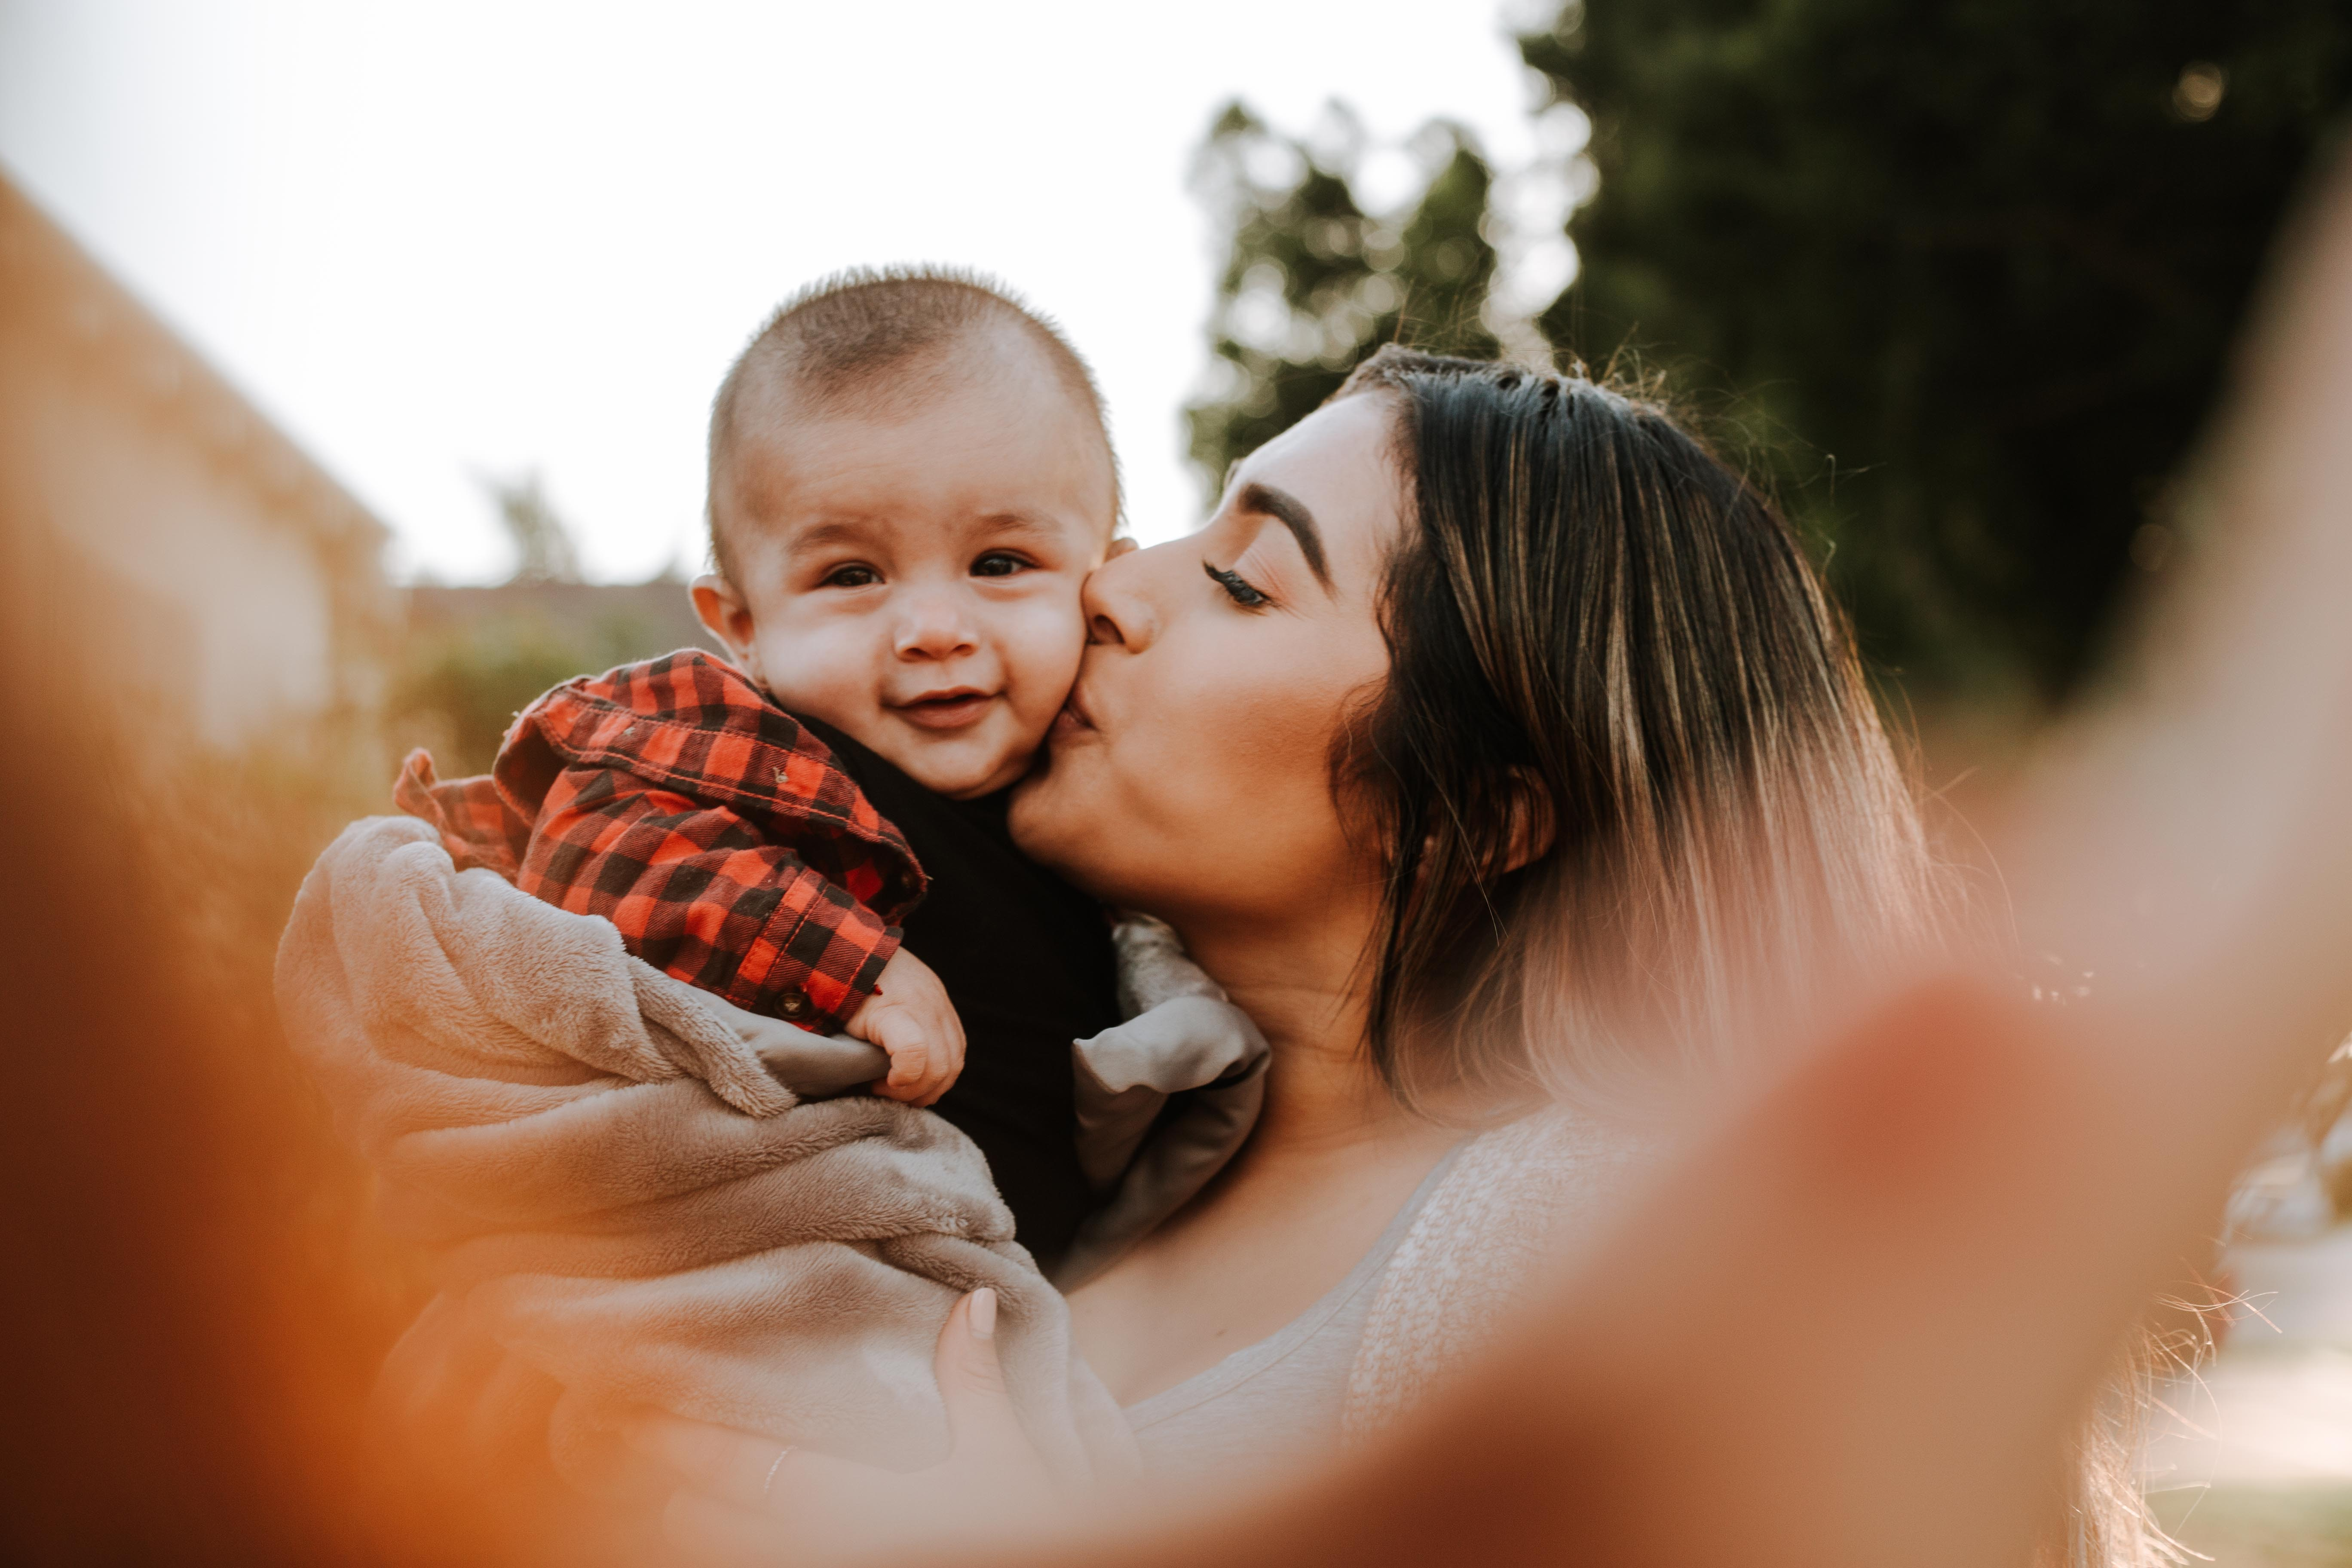 woman kiss a baby while taking picture